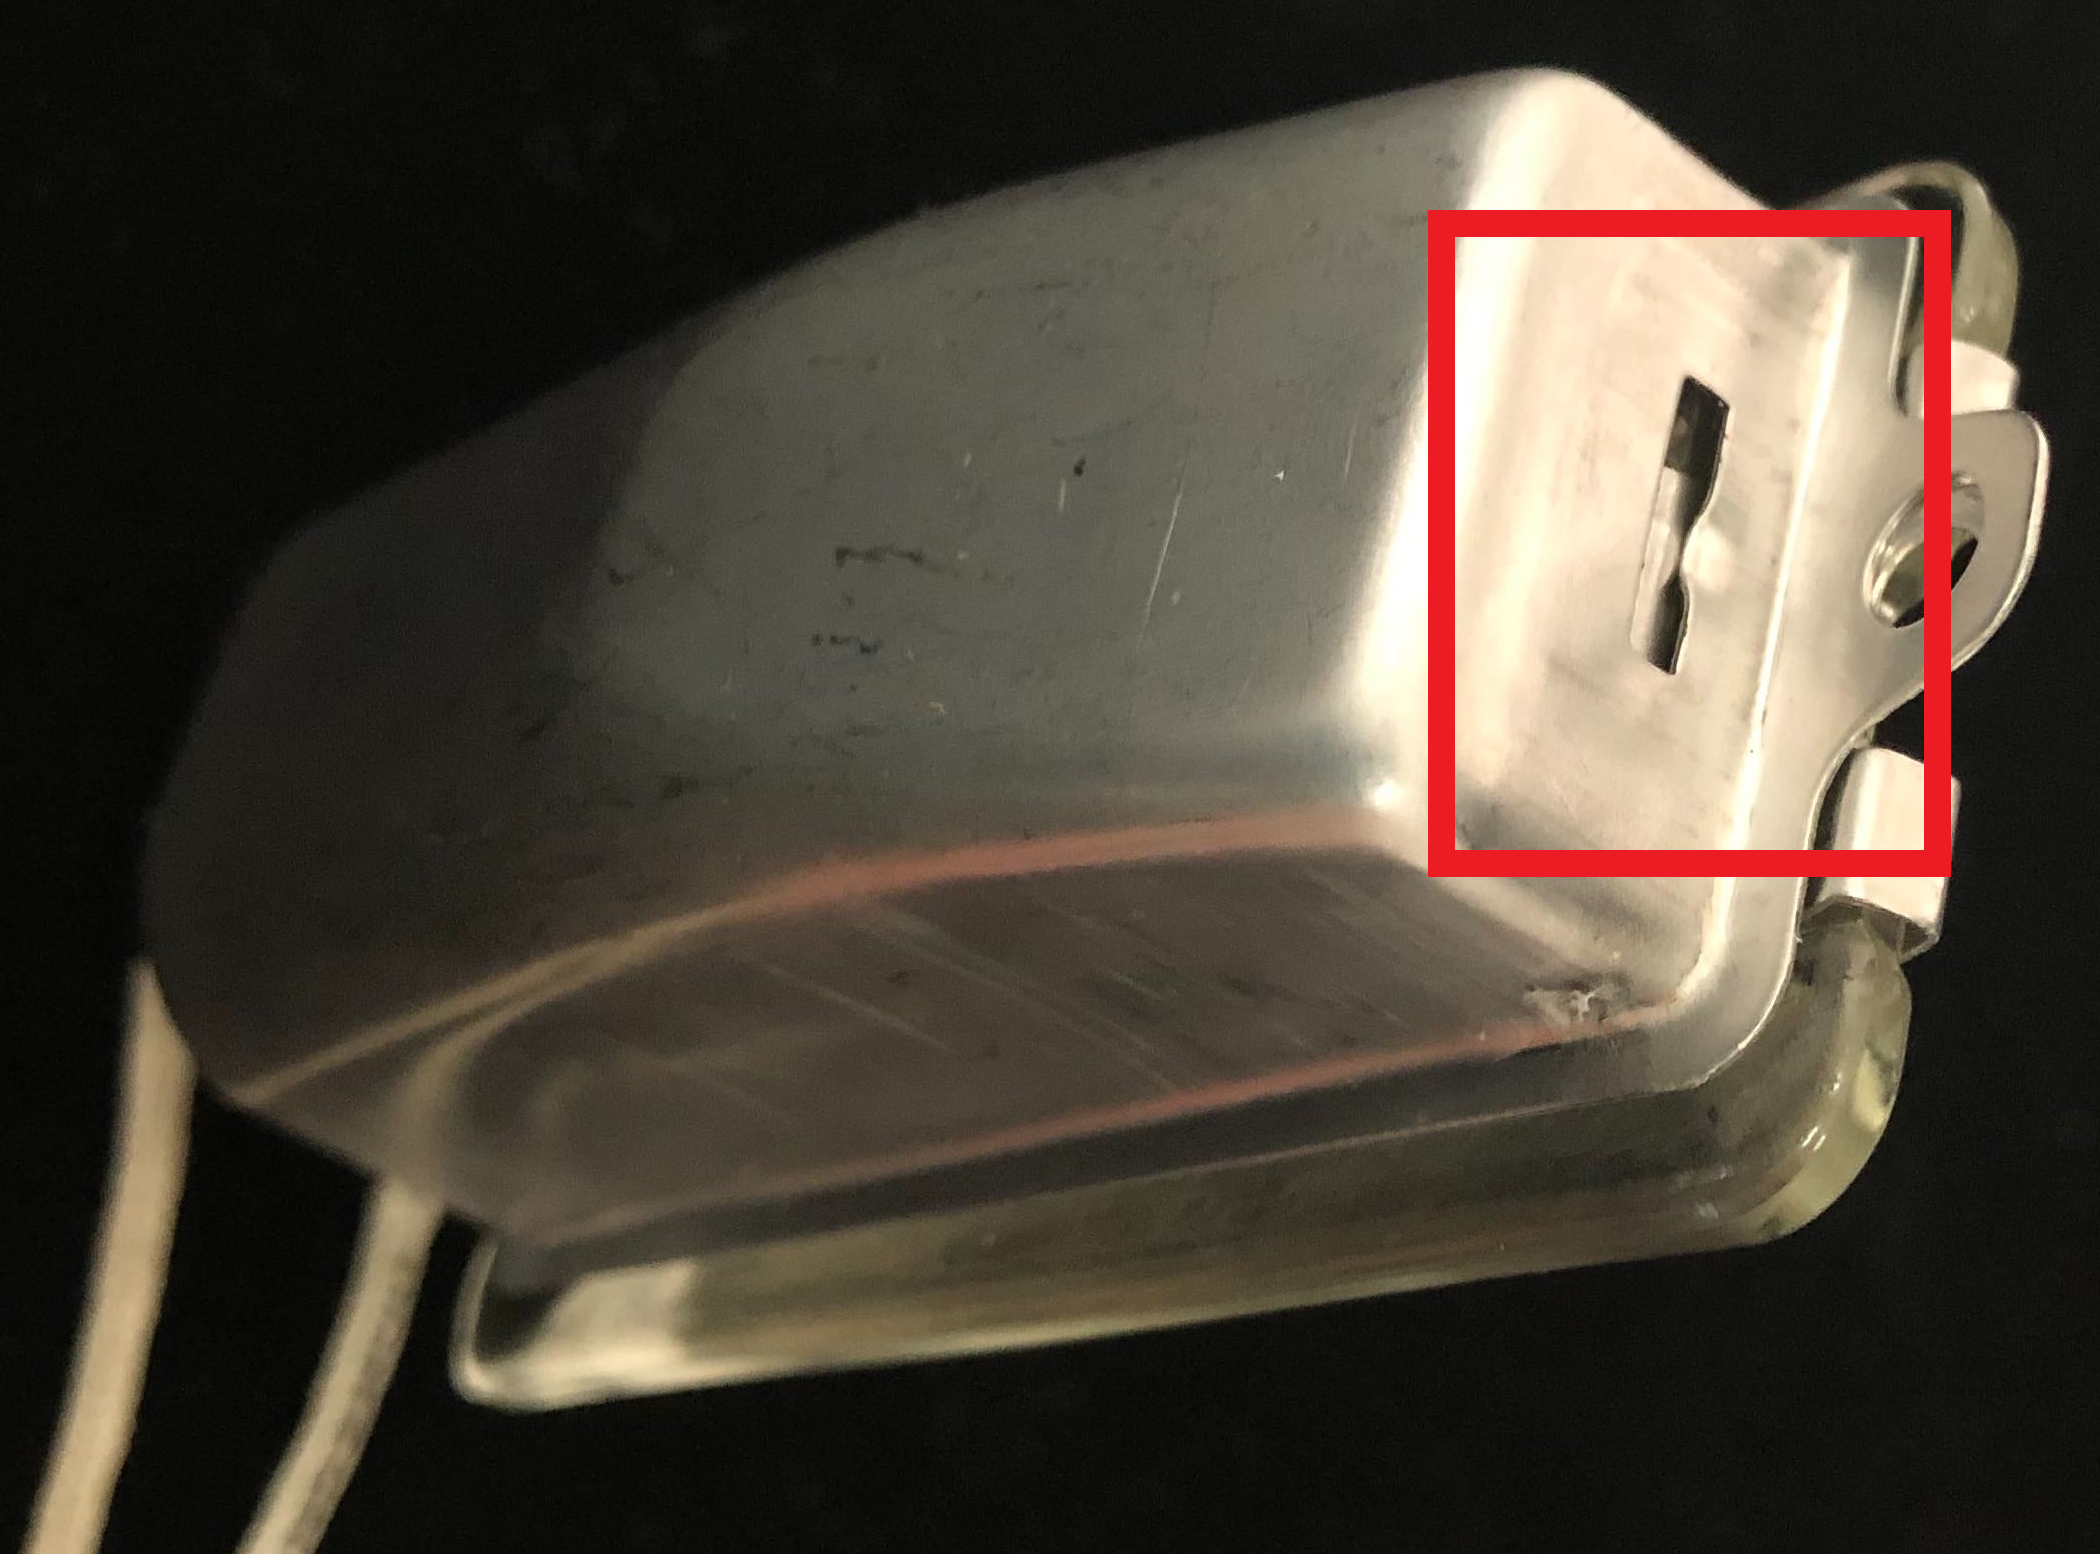 The latch is highlighted in red